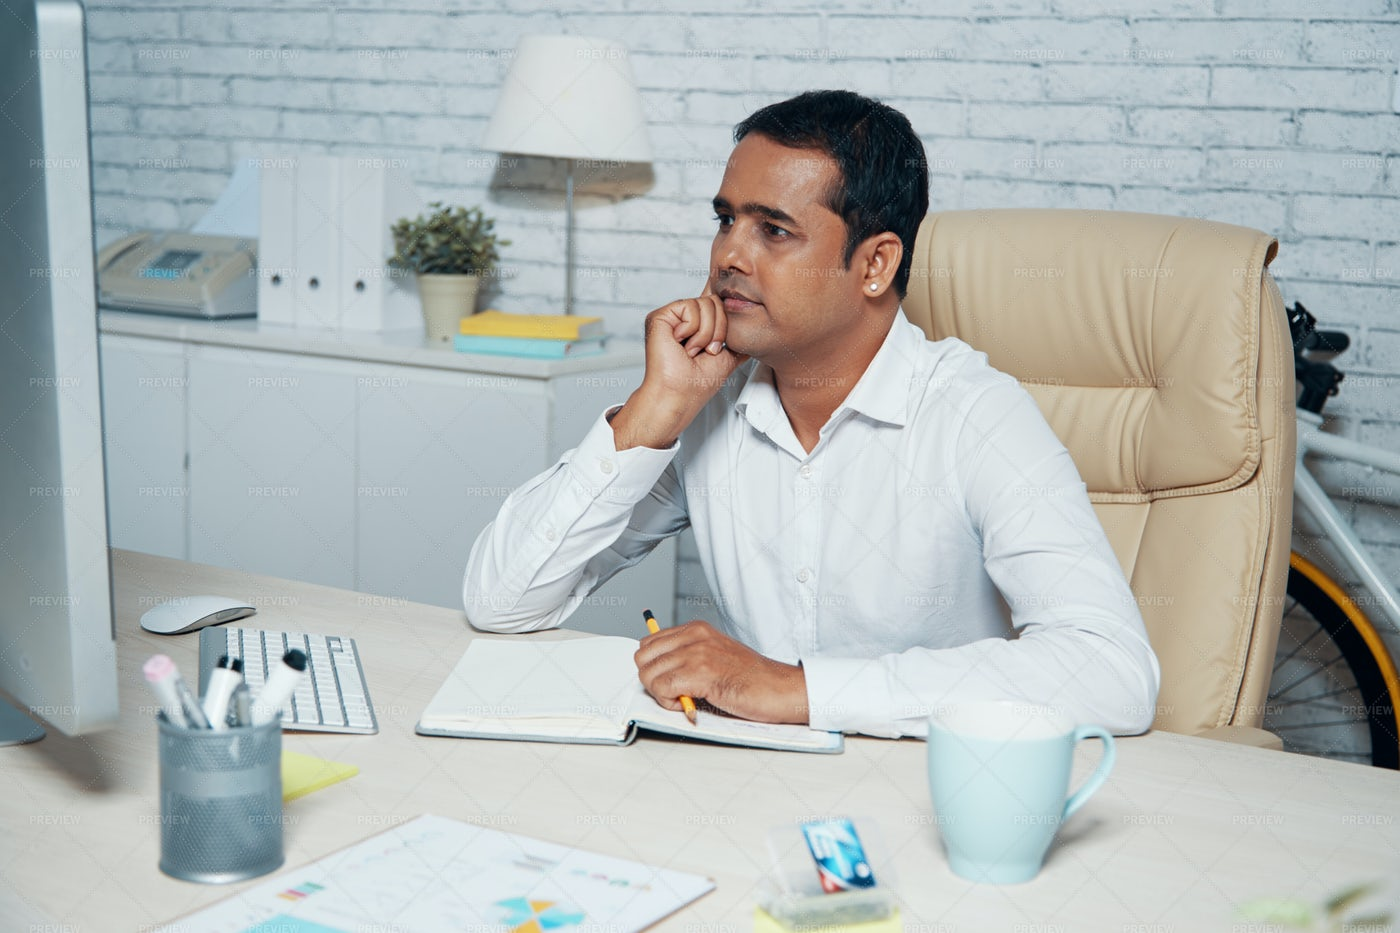 Businessman Thinking Over New Project: Stock Photos